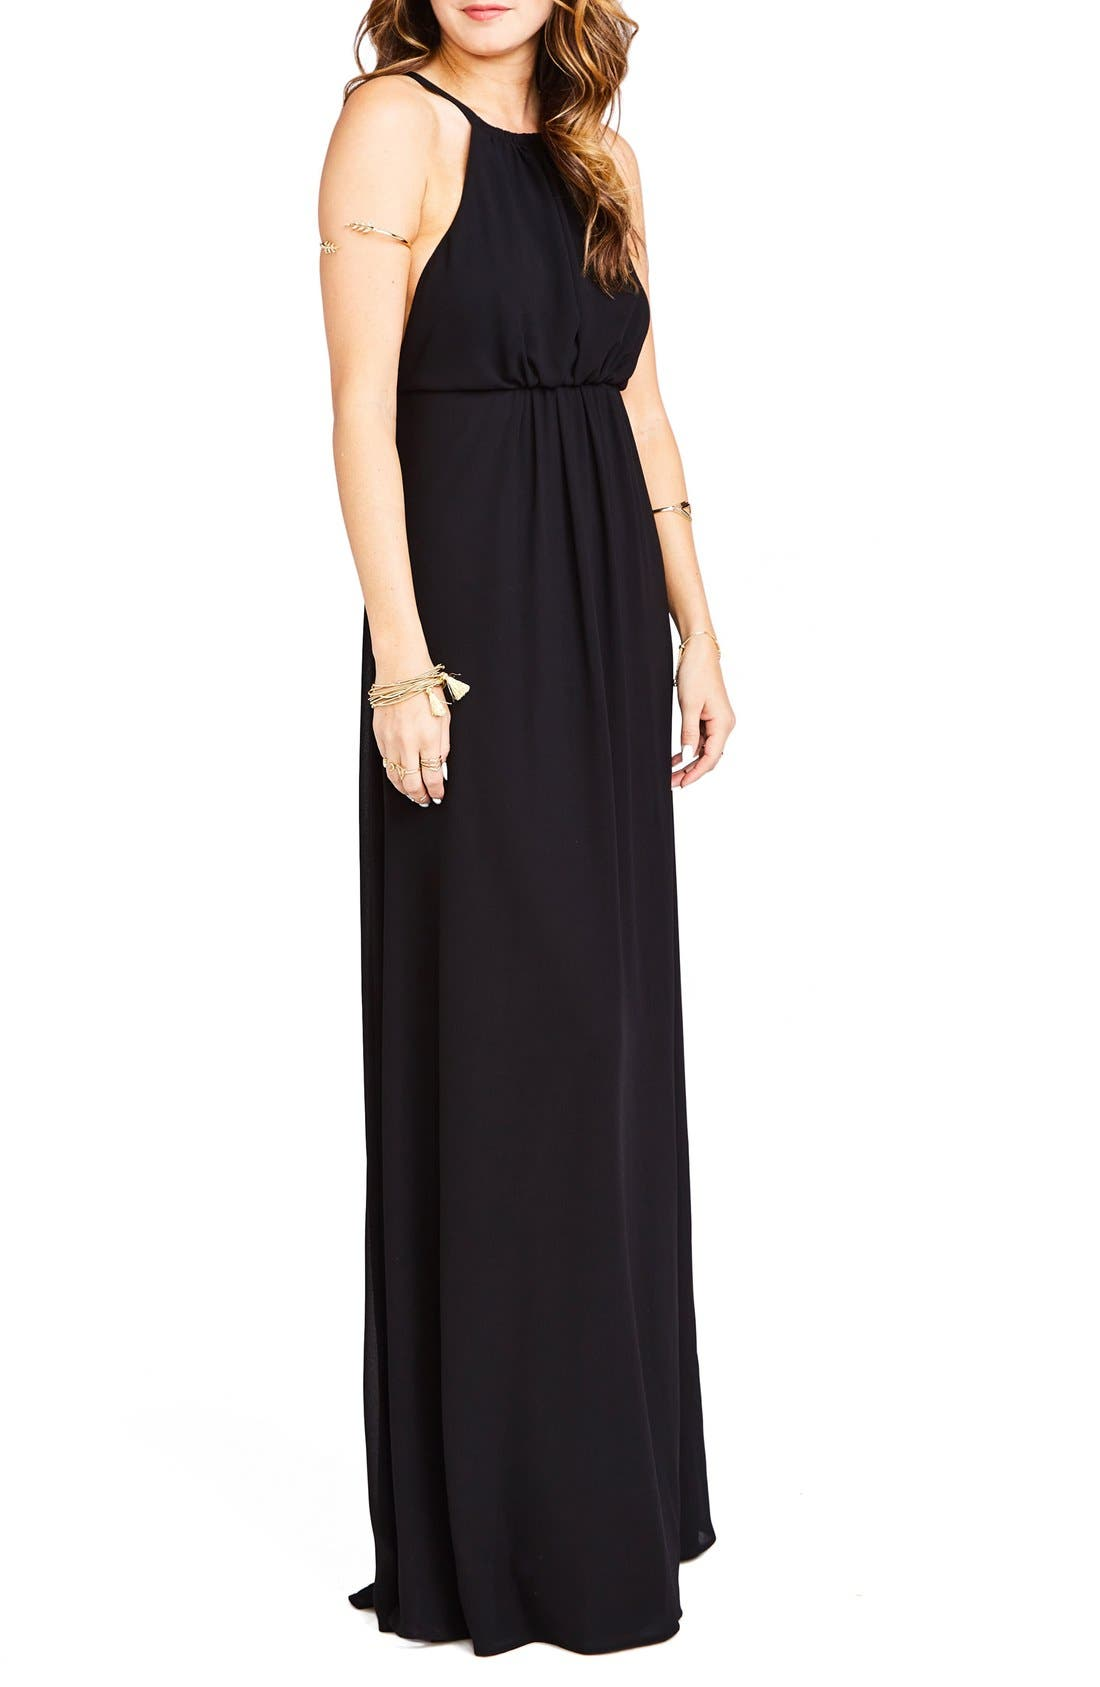 Amanda Open Back Blouson Gown,                             Alternate thumbnail 7, color,